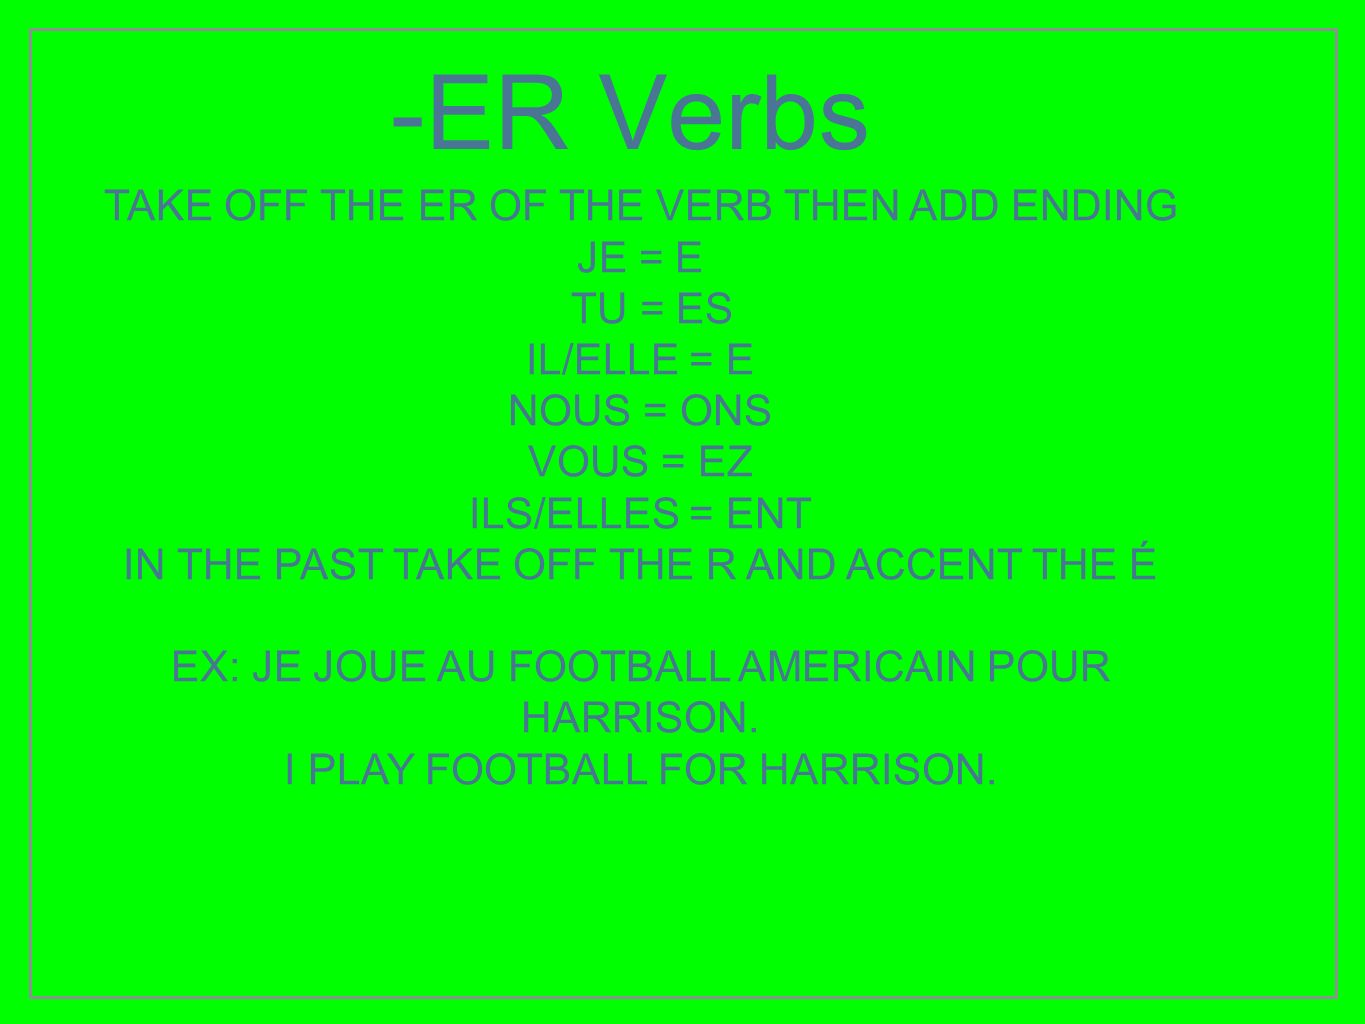 -ER Verbs TAKE OFF THE ER OF THE VERB THEN ADD ENDING JE = E TU = ES